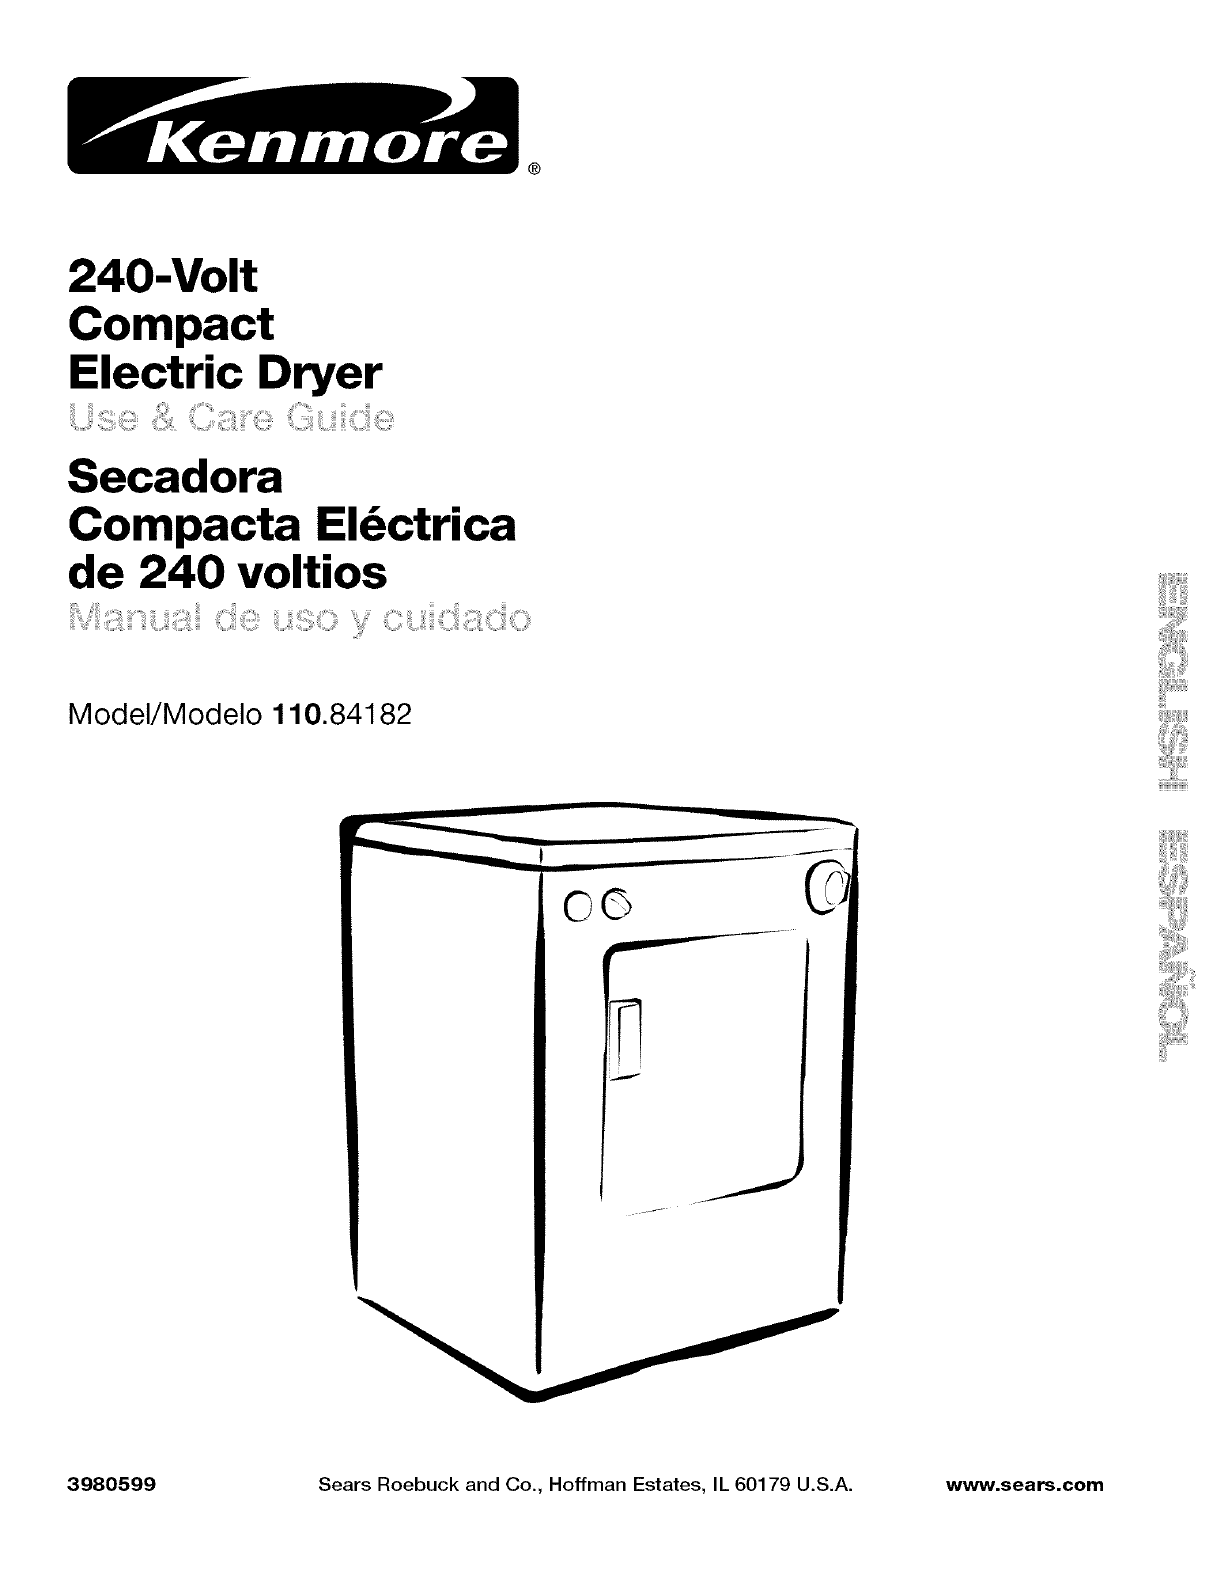 kenmore clothes dryer 110 84182 user guide manualsonline com rh laundry manualsonline com Kenmore Dryer Troubleshooting Kenmore Dryer Troubleshooting